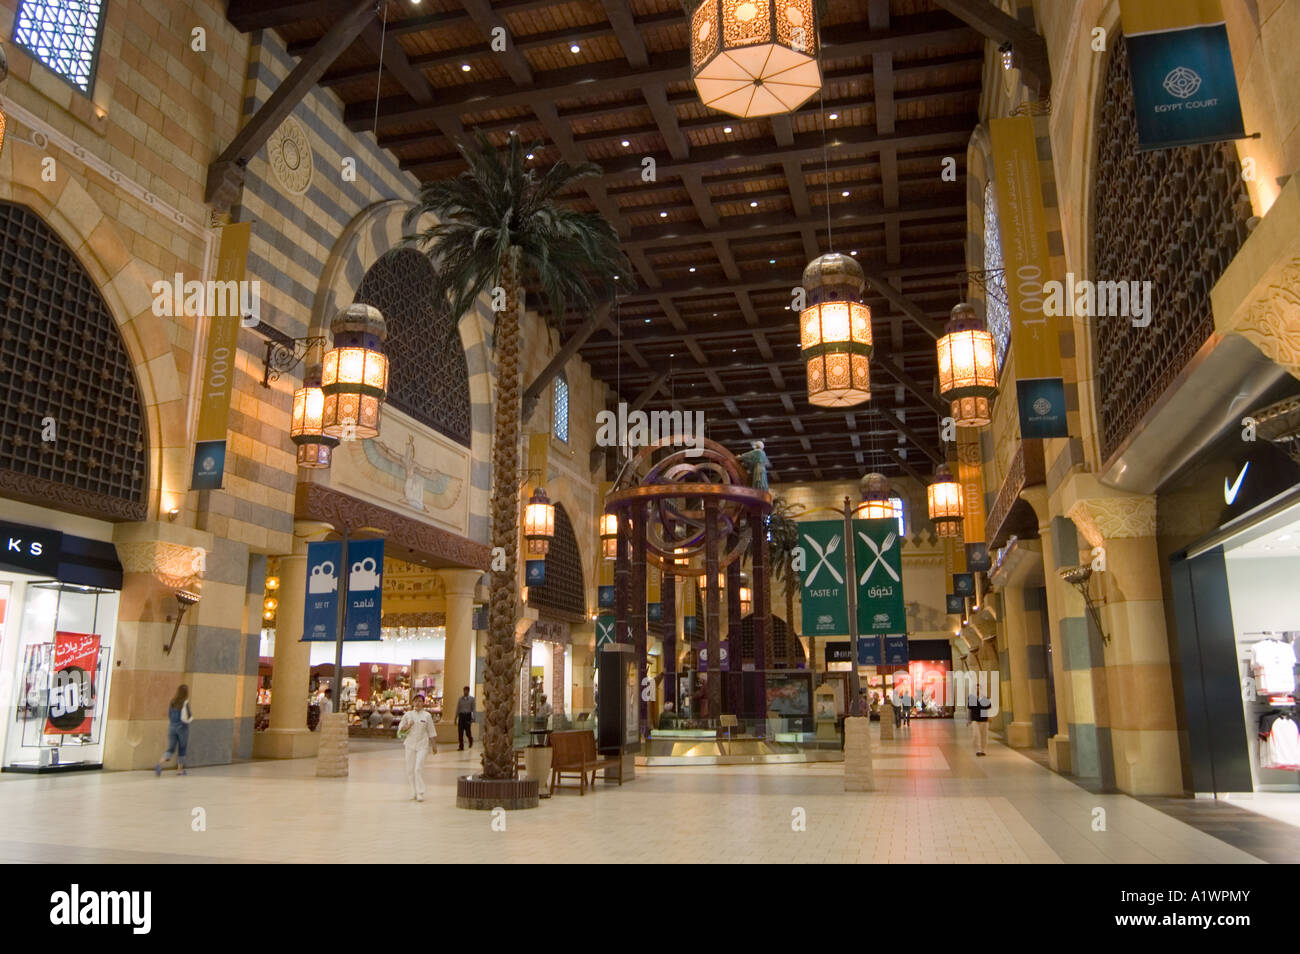 Ibn Battuta High Resolution Stock Photography And Images Alamy